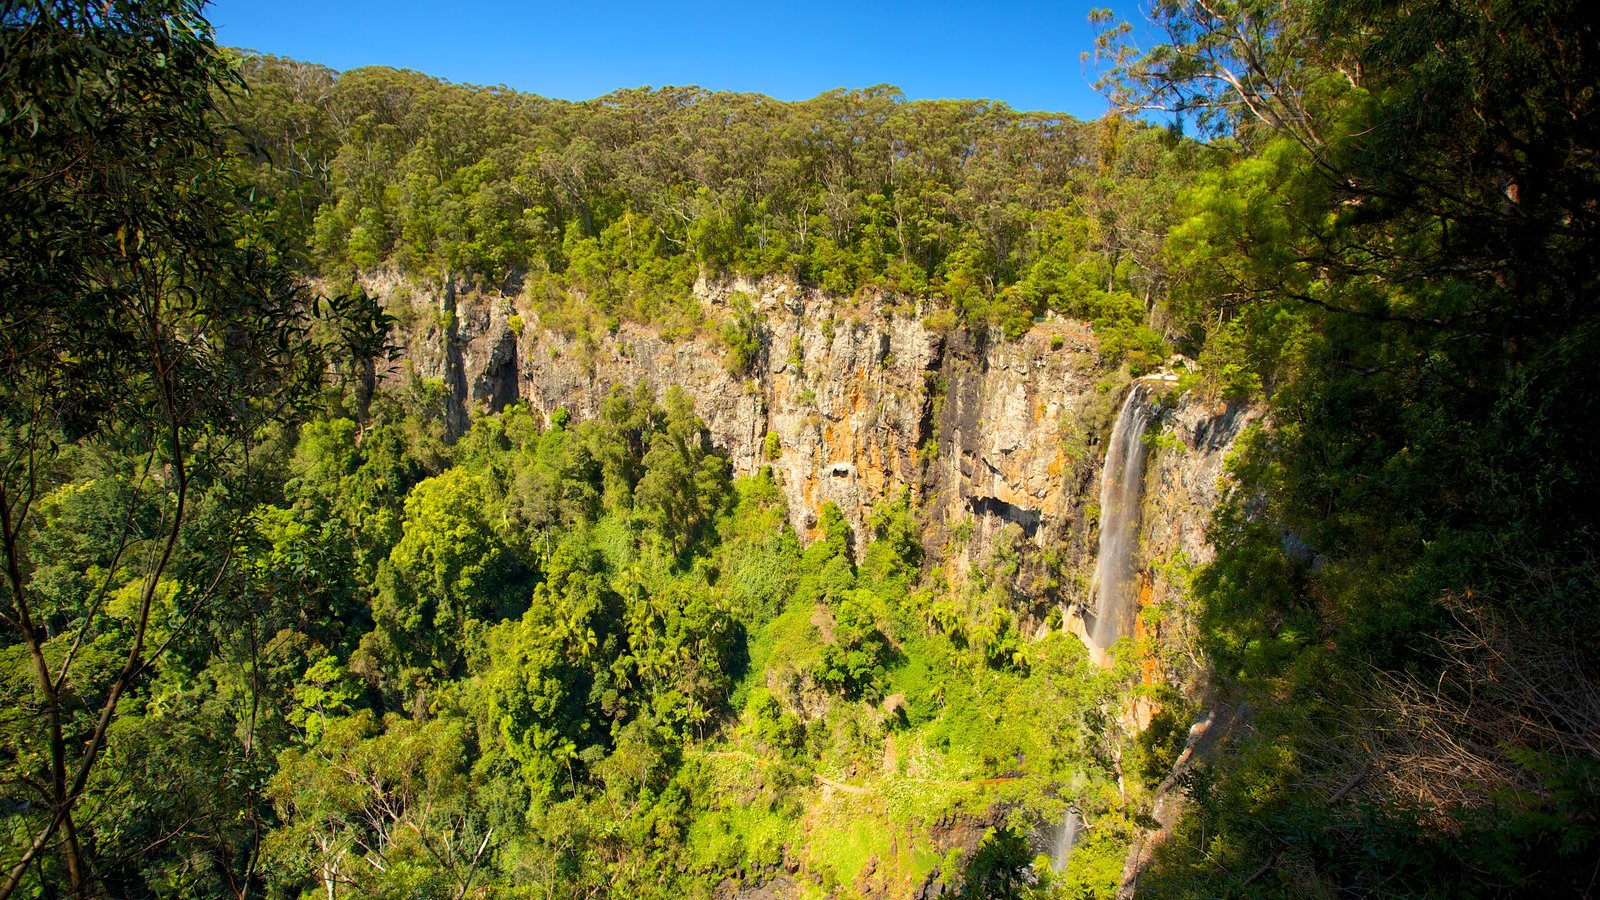 Springbrook National Park showing a gorge or canyon and forests